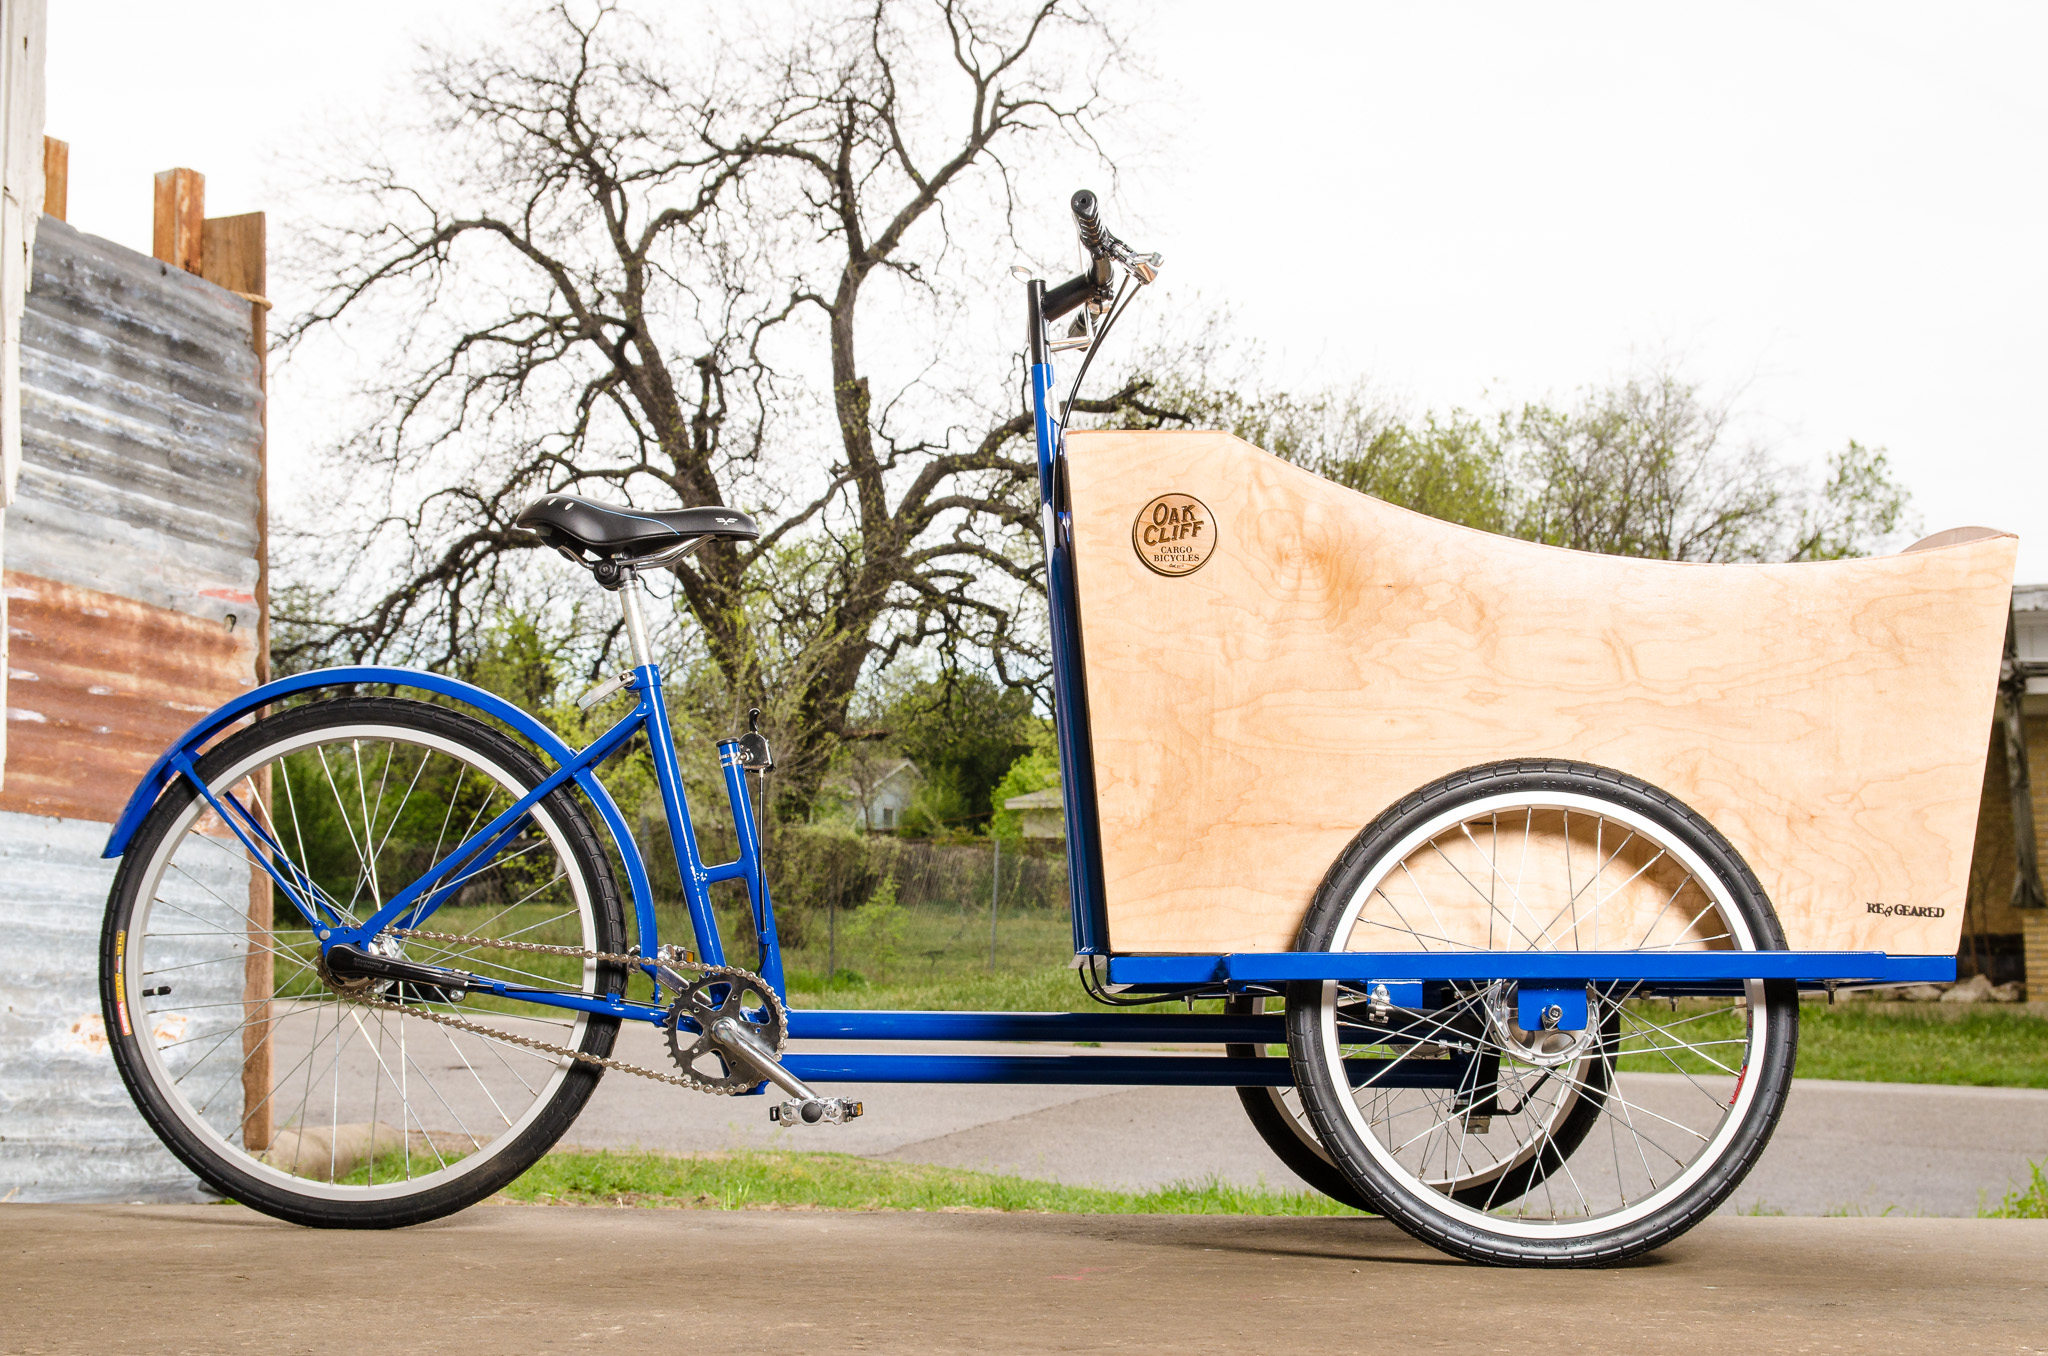 New frame colors inspired by Texas! – Oak Cliff Cargo Bicycles